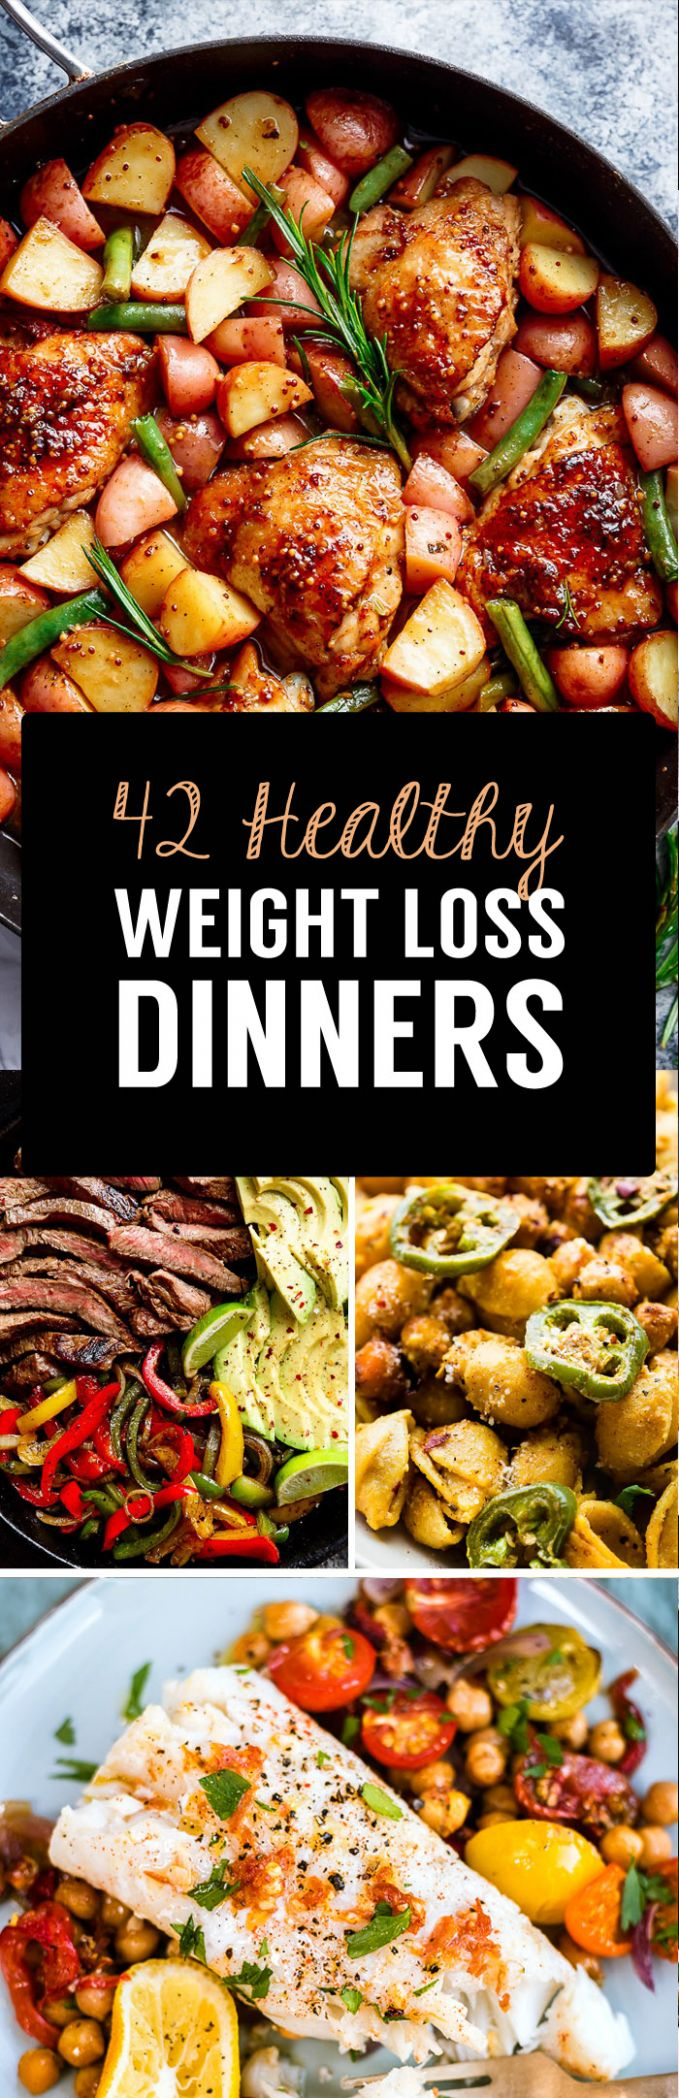 8 Weight Loss Dinner Recipes That Will Help You Shrink Belly Fat ...